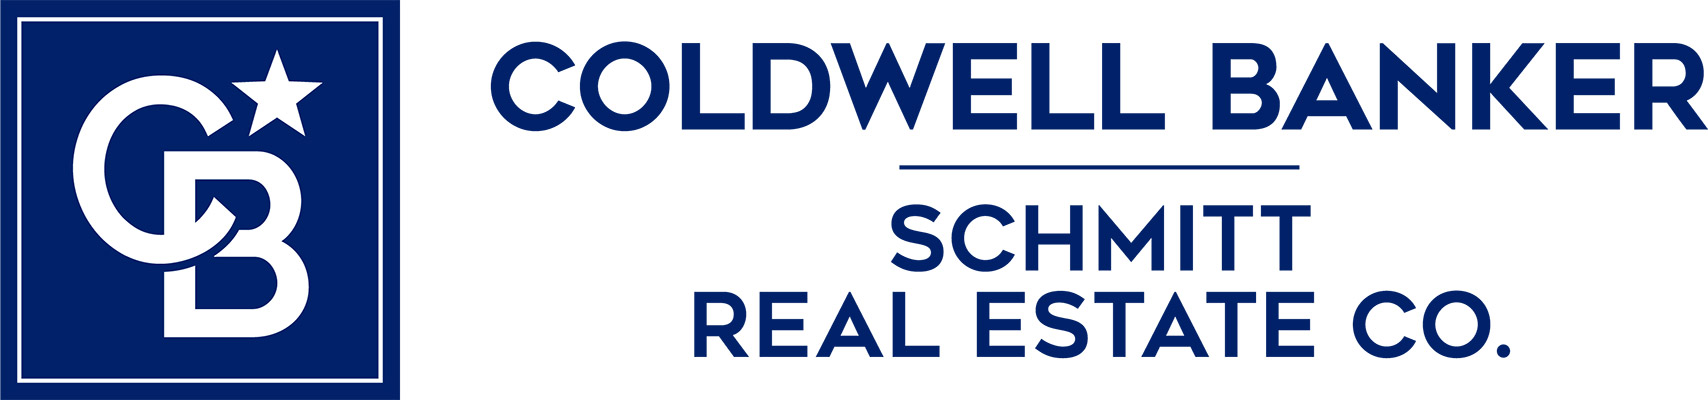 Richard Lively - Coldwell Banker